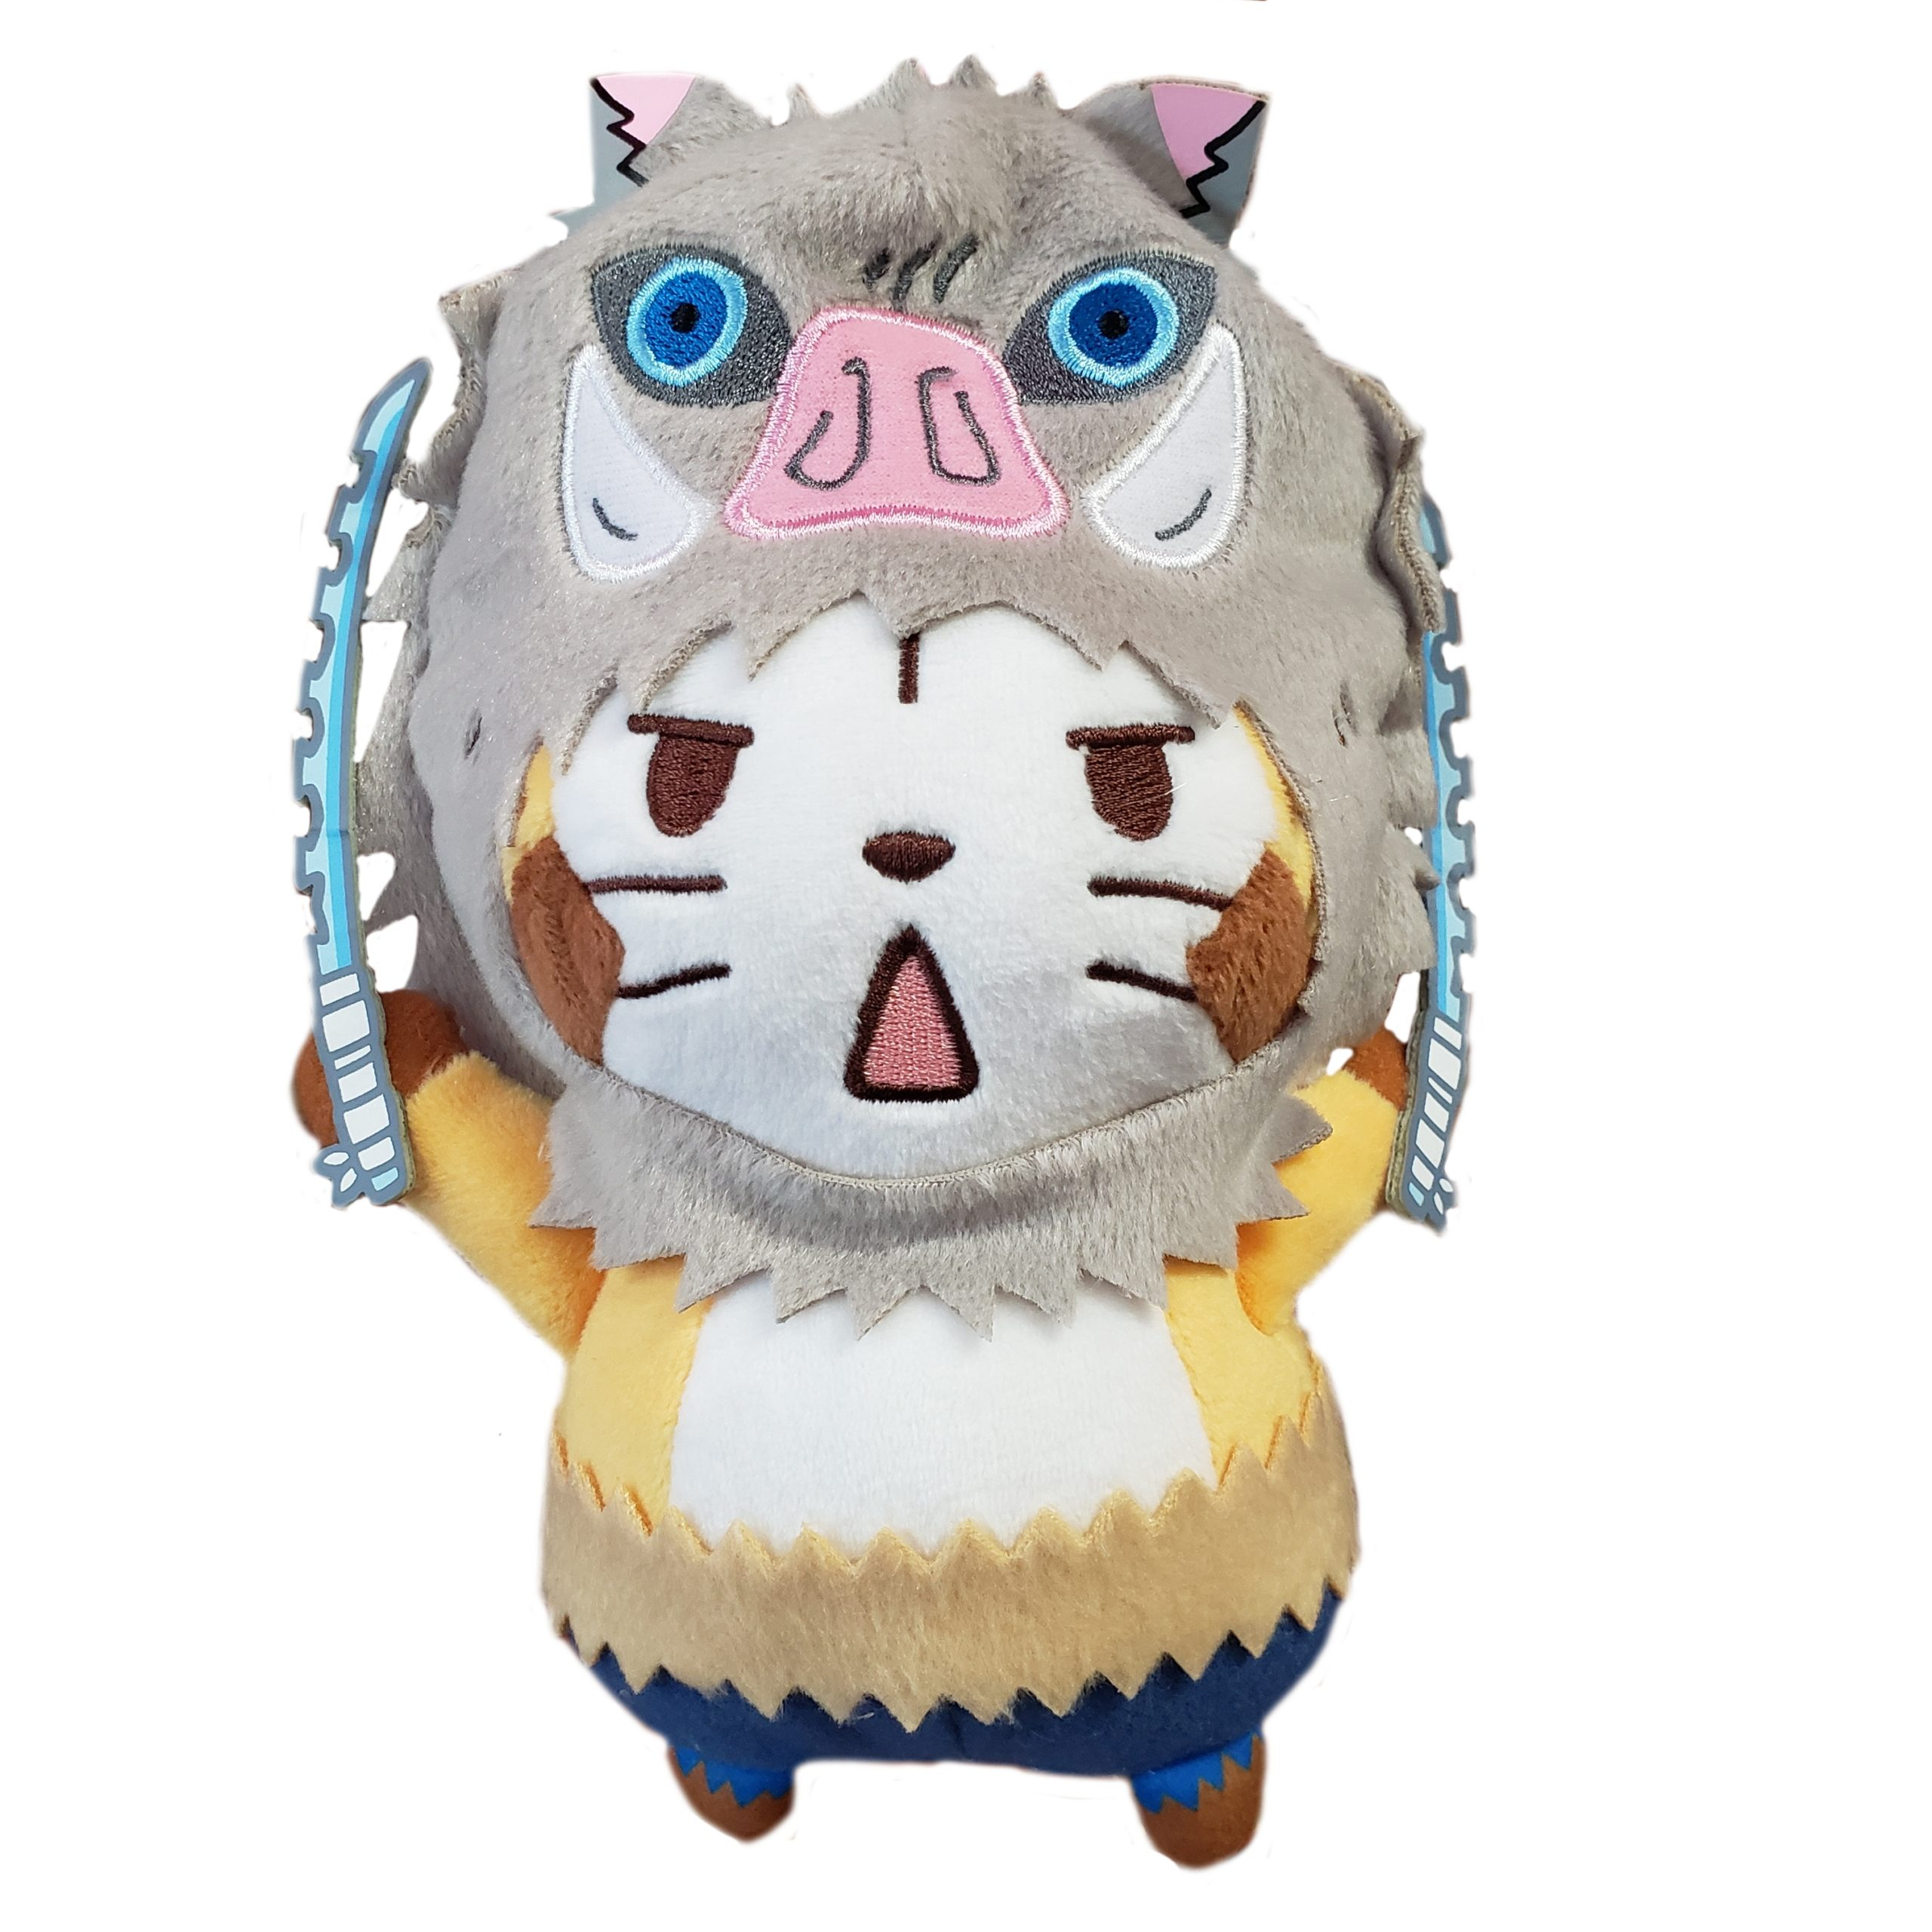 inosuke–demon-slayer-x-rascal-plush (1)